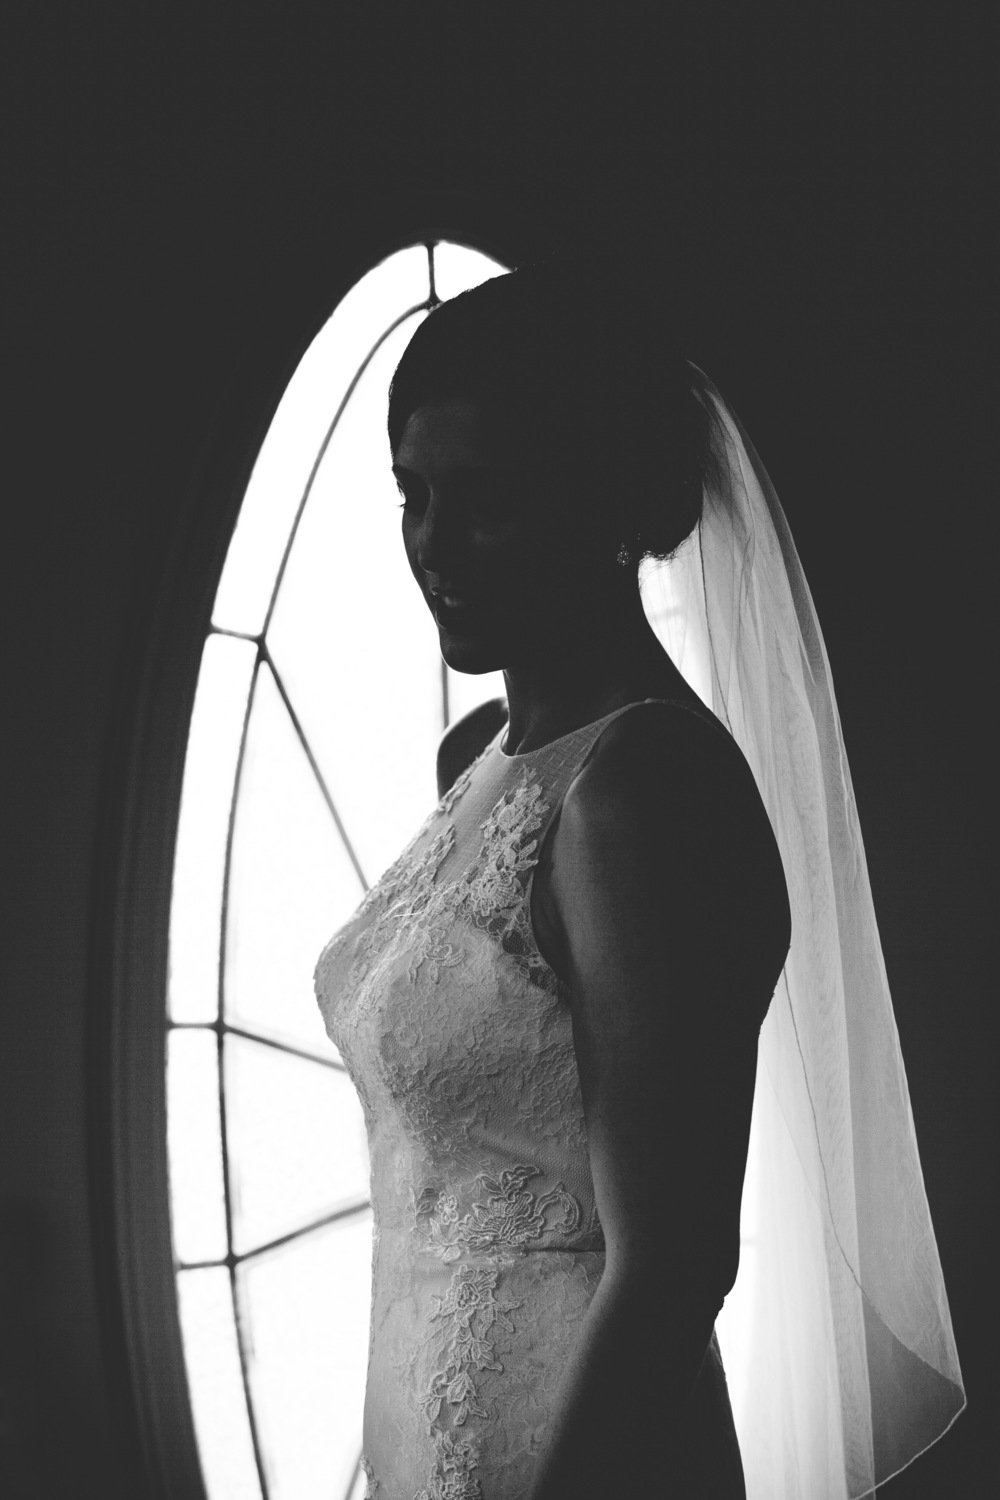 A unique silhouette shot from the window pane of the Bride's house.